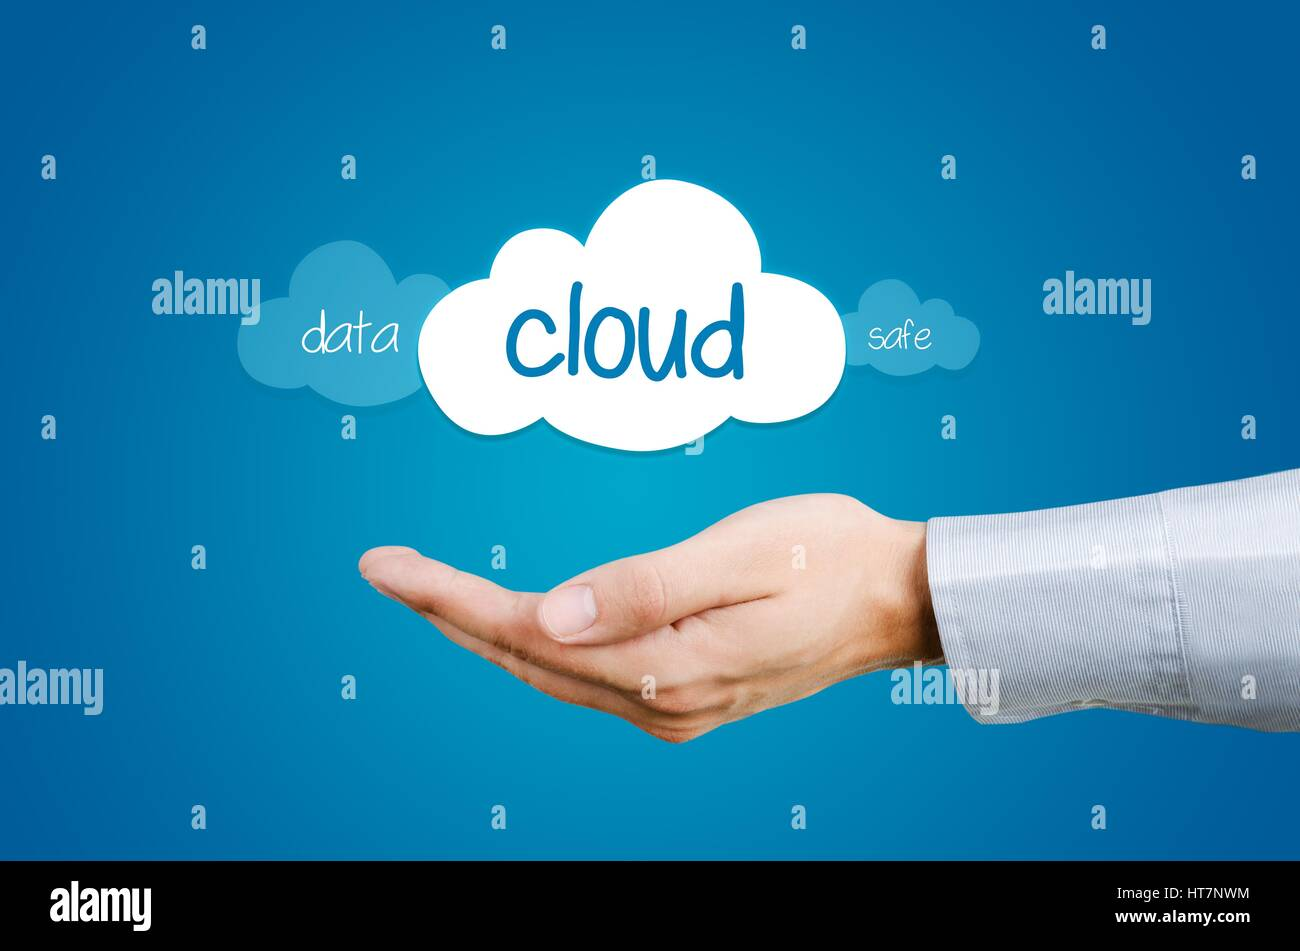 Cloud computing composition - hand and clouds with data and safe words Stock Photo